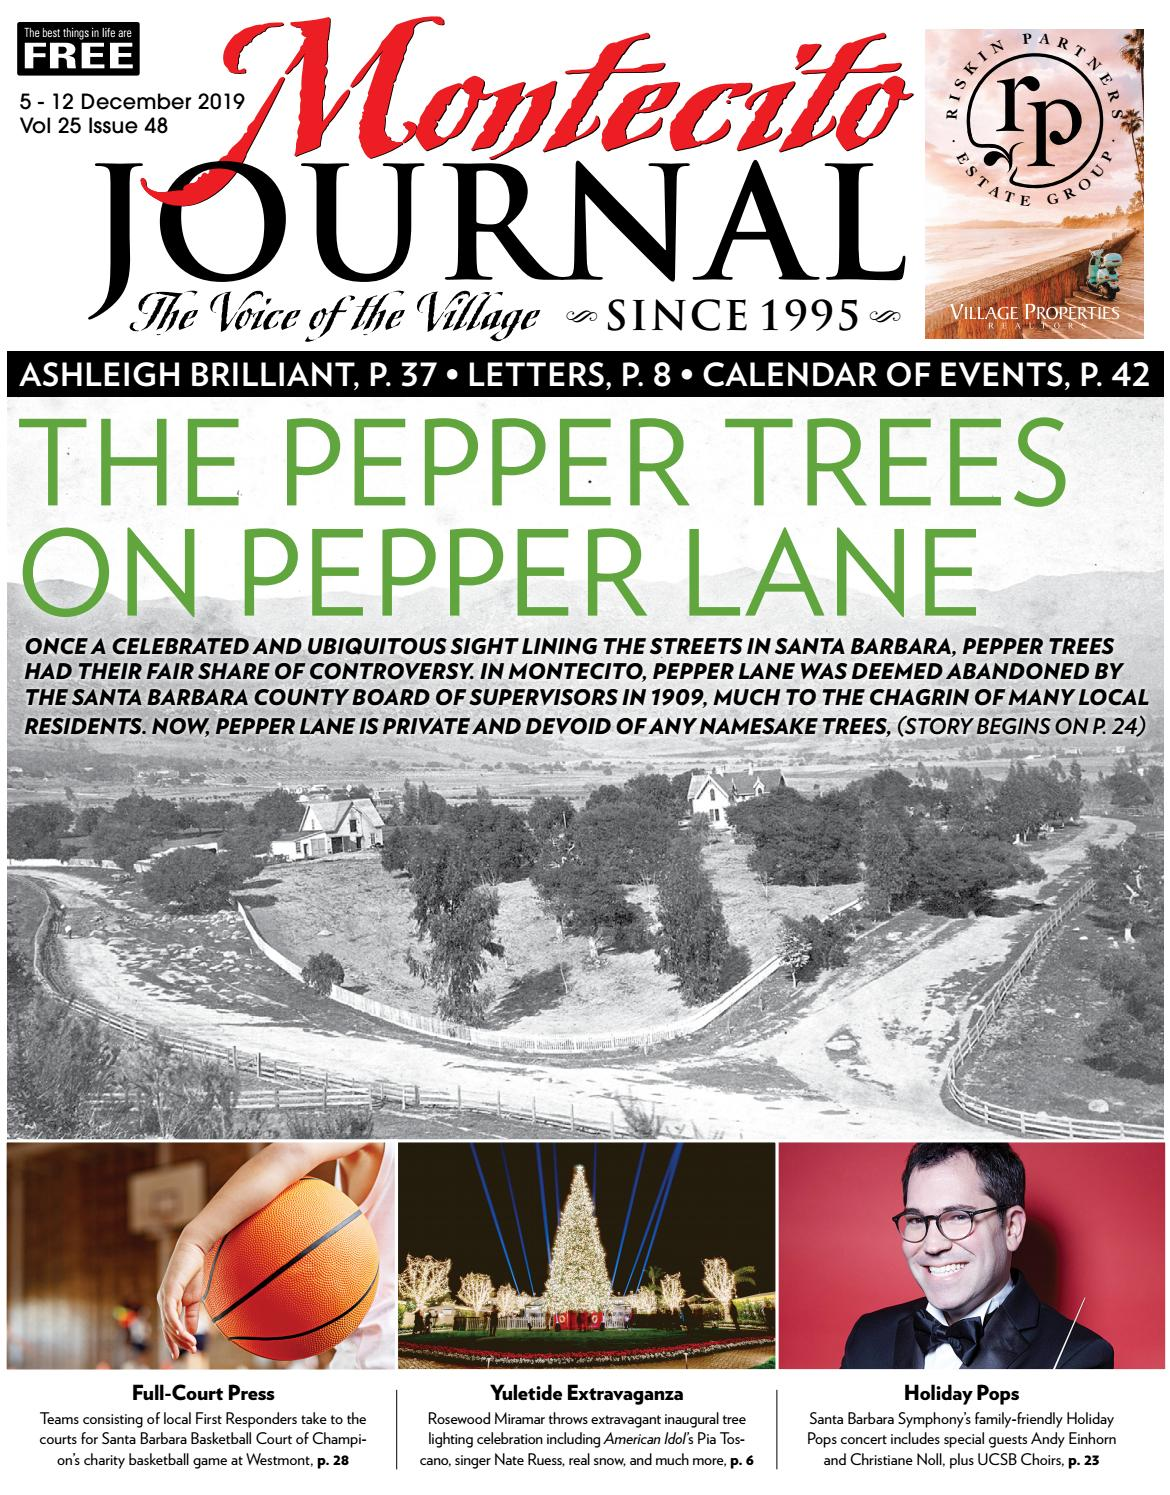 Christine Miranda Saint Paul Trois Chateaux the pepper trees on pepper lanemontecito journal - issuu